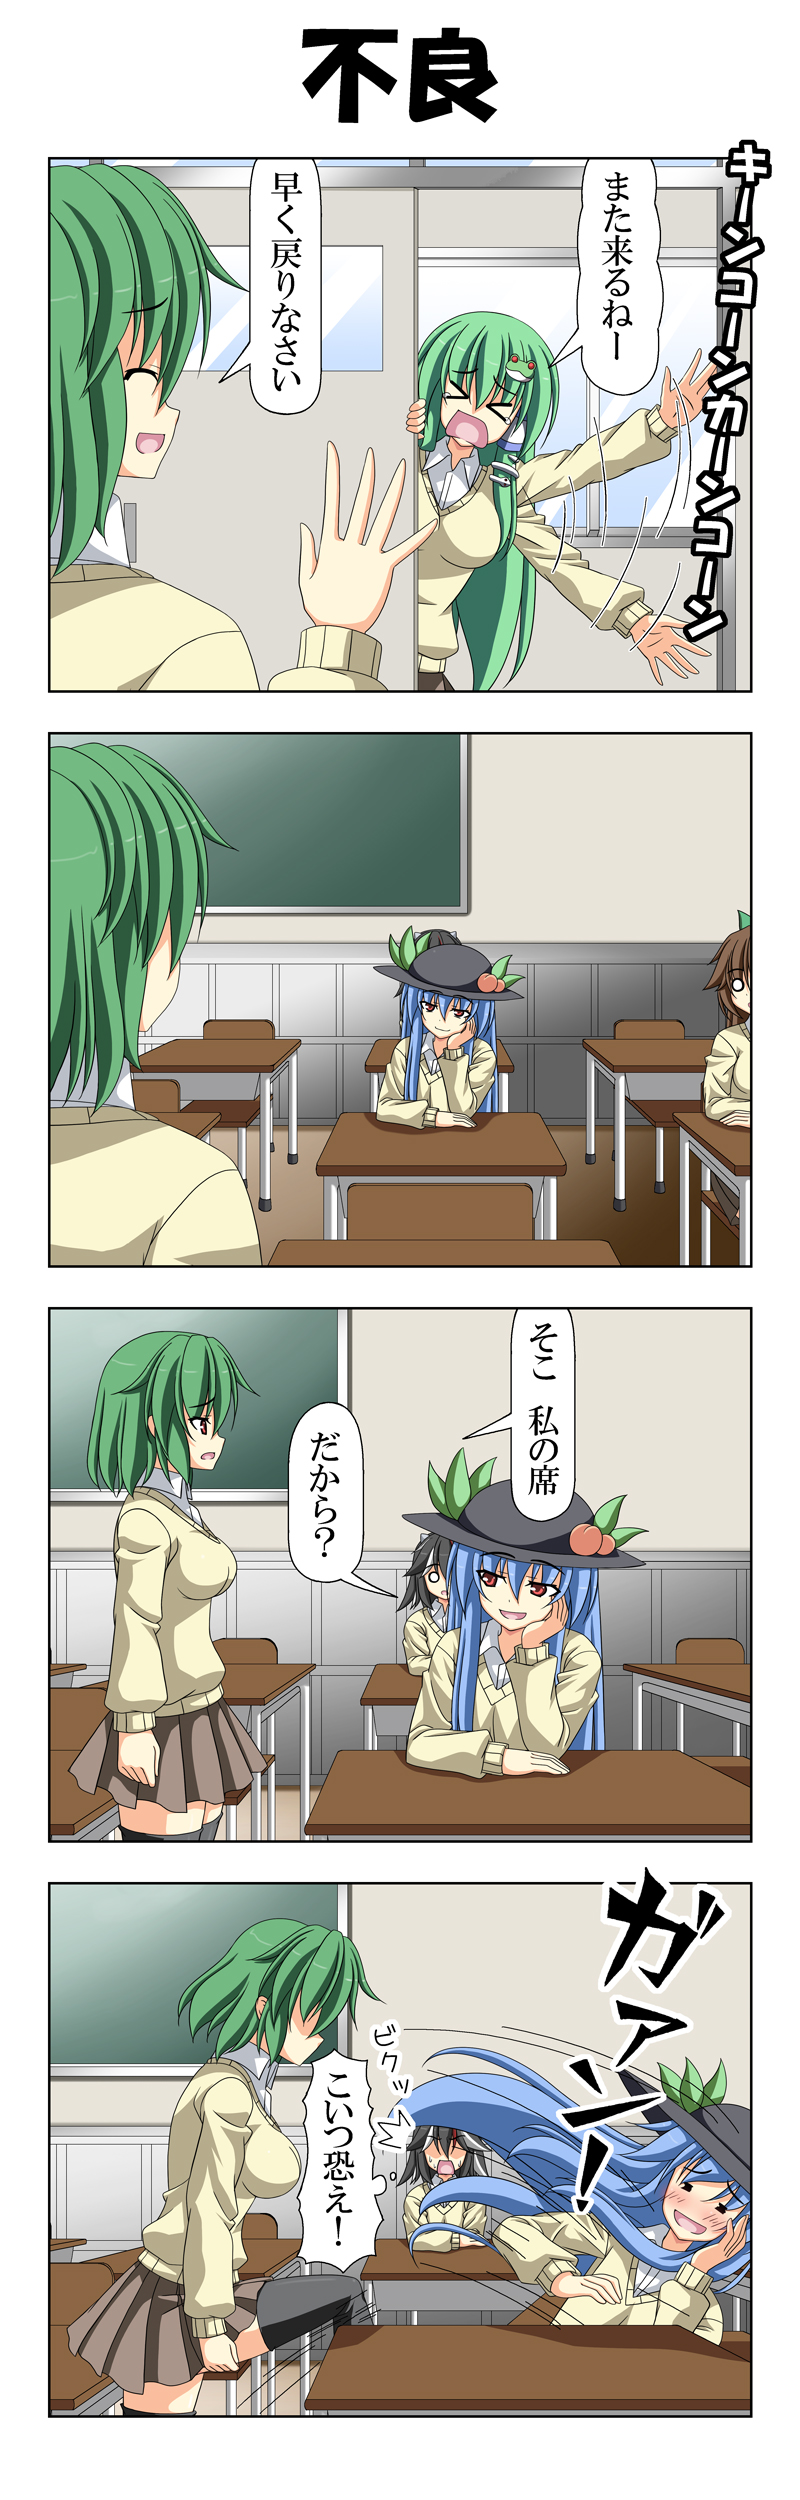 4koma 5girls absurdres black_hair blue_hair blush bow brown_hair closed_eyes comic commentary_request food food_on_head frog_hair_ornament fruit_on_head green_hair hair_bow hair_ornament hair_tubes hand_on_own_cheek hat highres hinanawi_tenshi kazami_yuuka kochiya_sanae multiple_girls object_on_head open_mouth red_eyes reiuji_utsuho school_uniform shaded_face smile snake_hair_ornament touhou translation_request waving